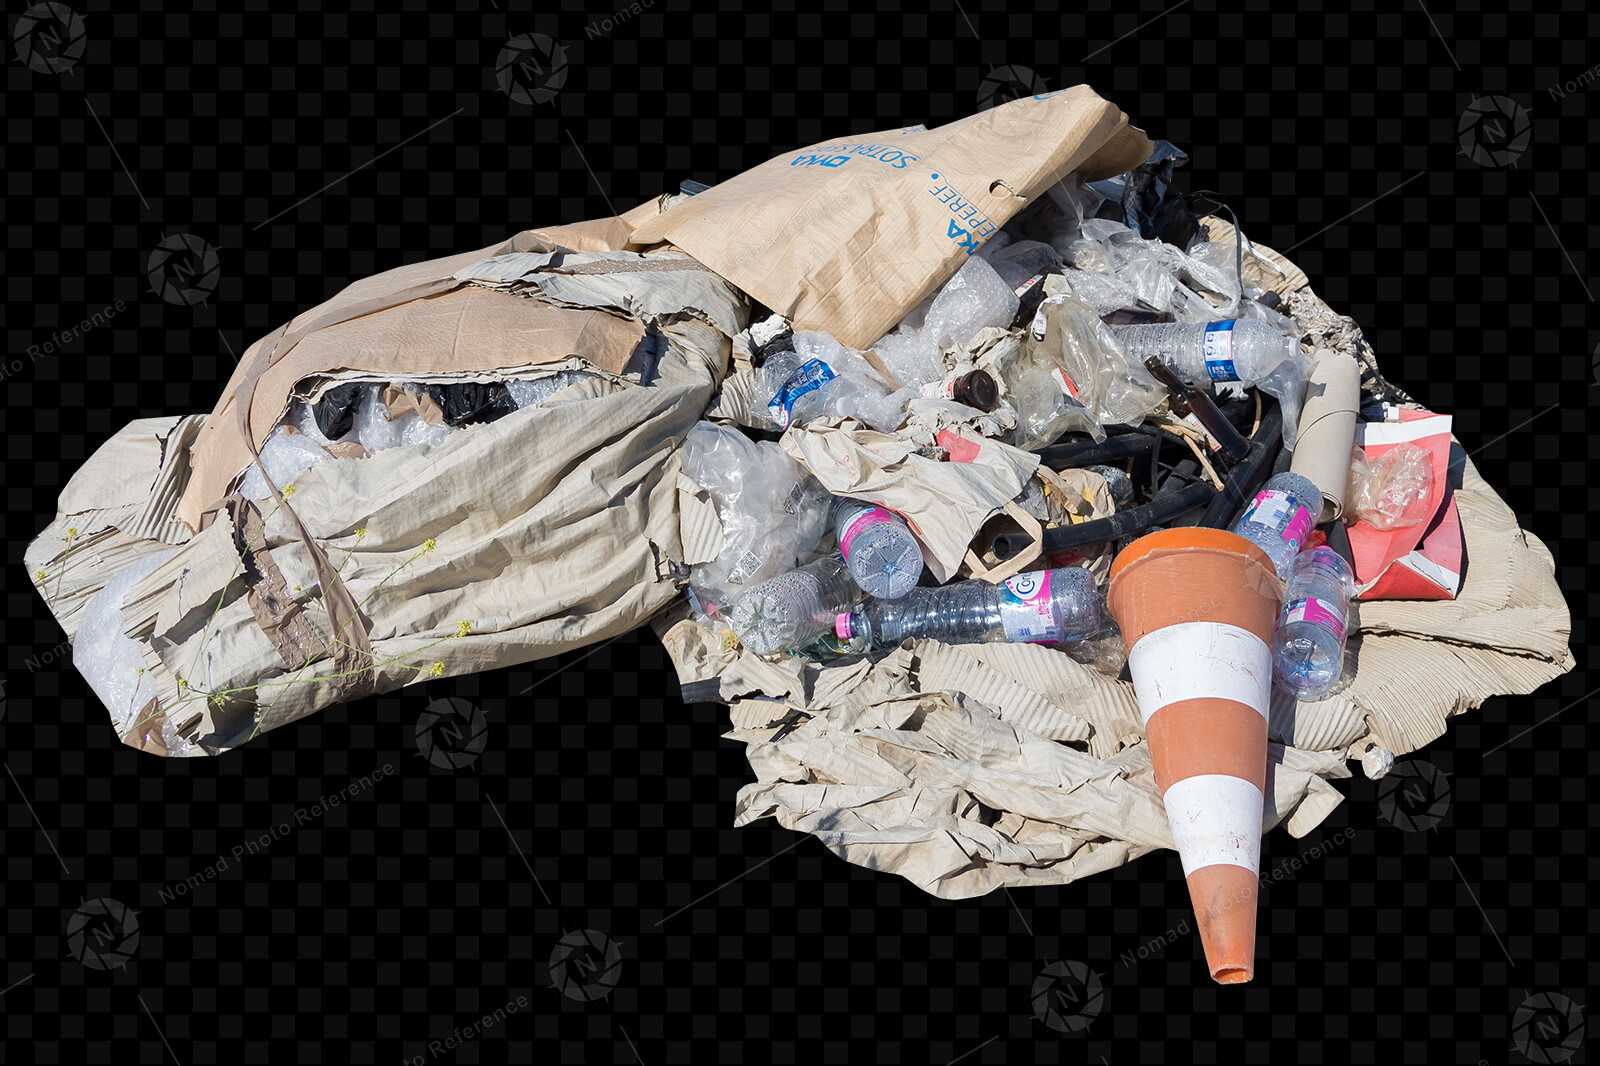 From the PNG Photo Pack: Trash Props volume 2  https://www.artstation.com/a/7545910